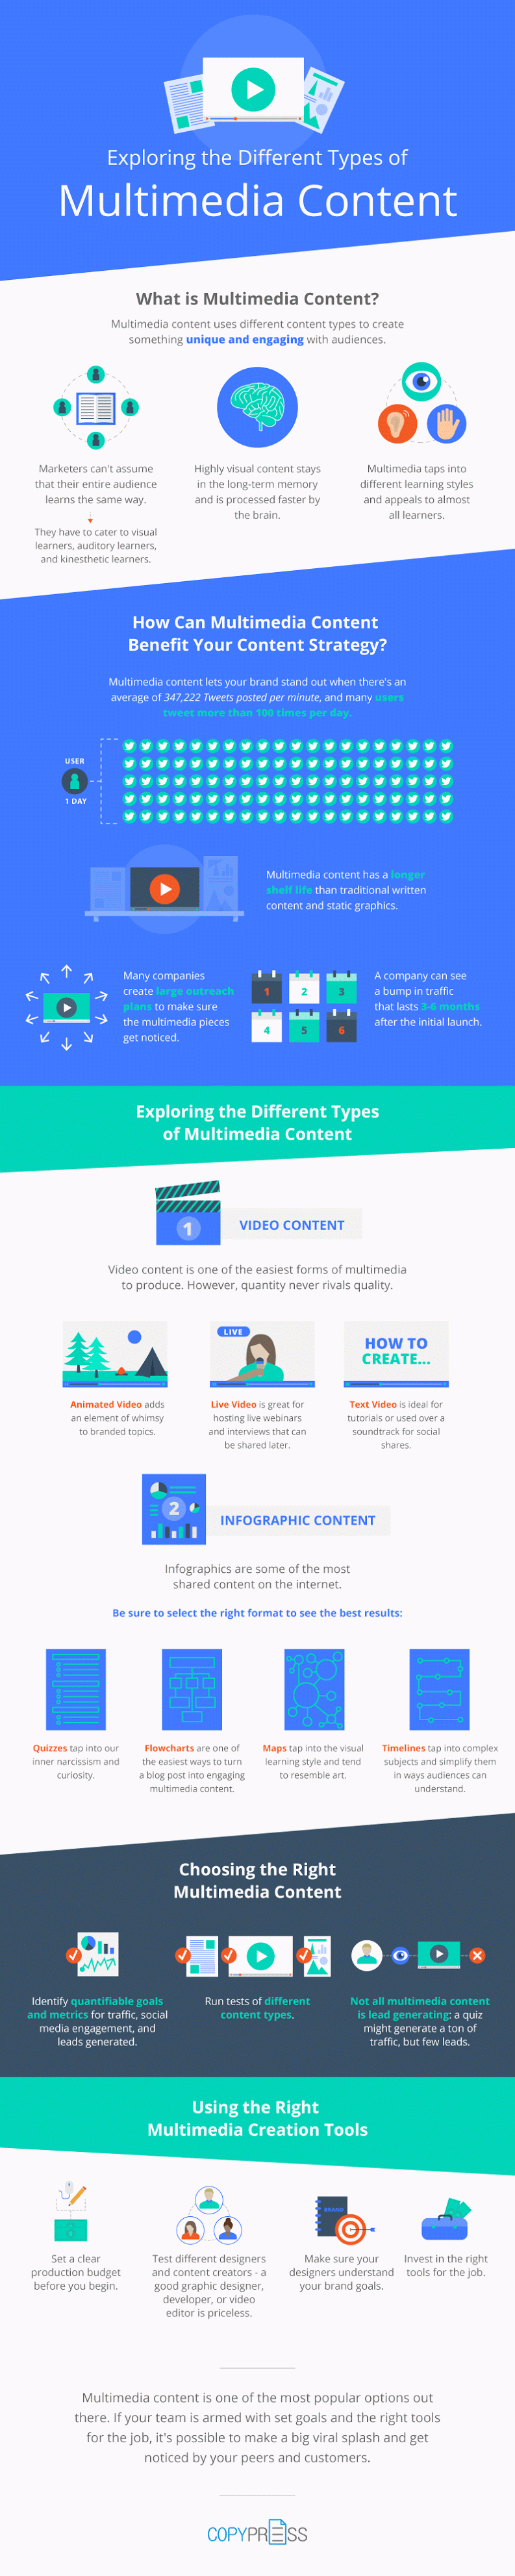 Why Multimedia Content is Important [Infographic] | Social Media Today